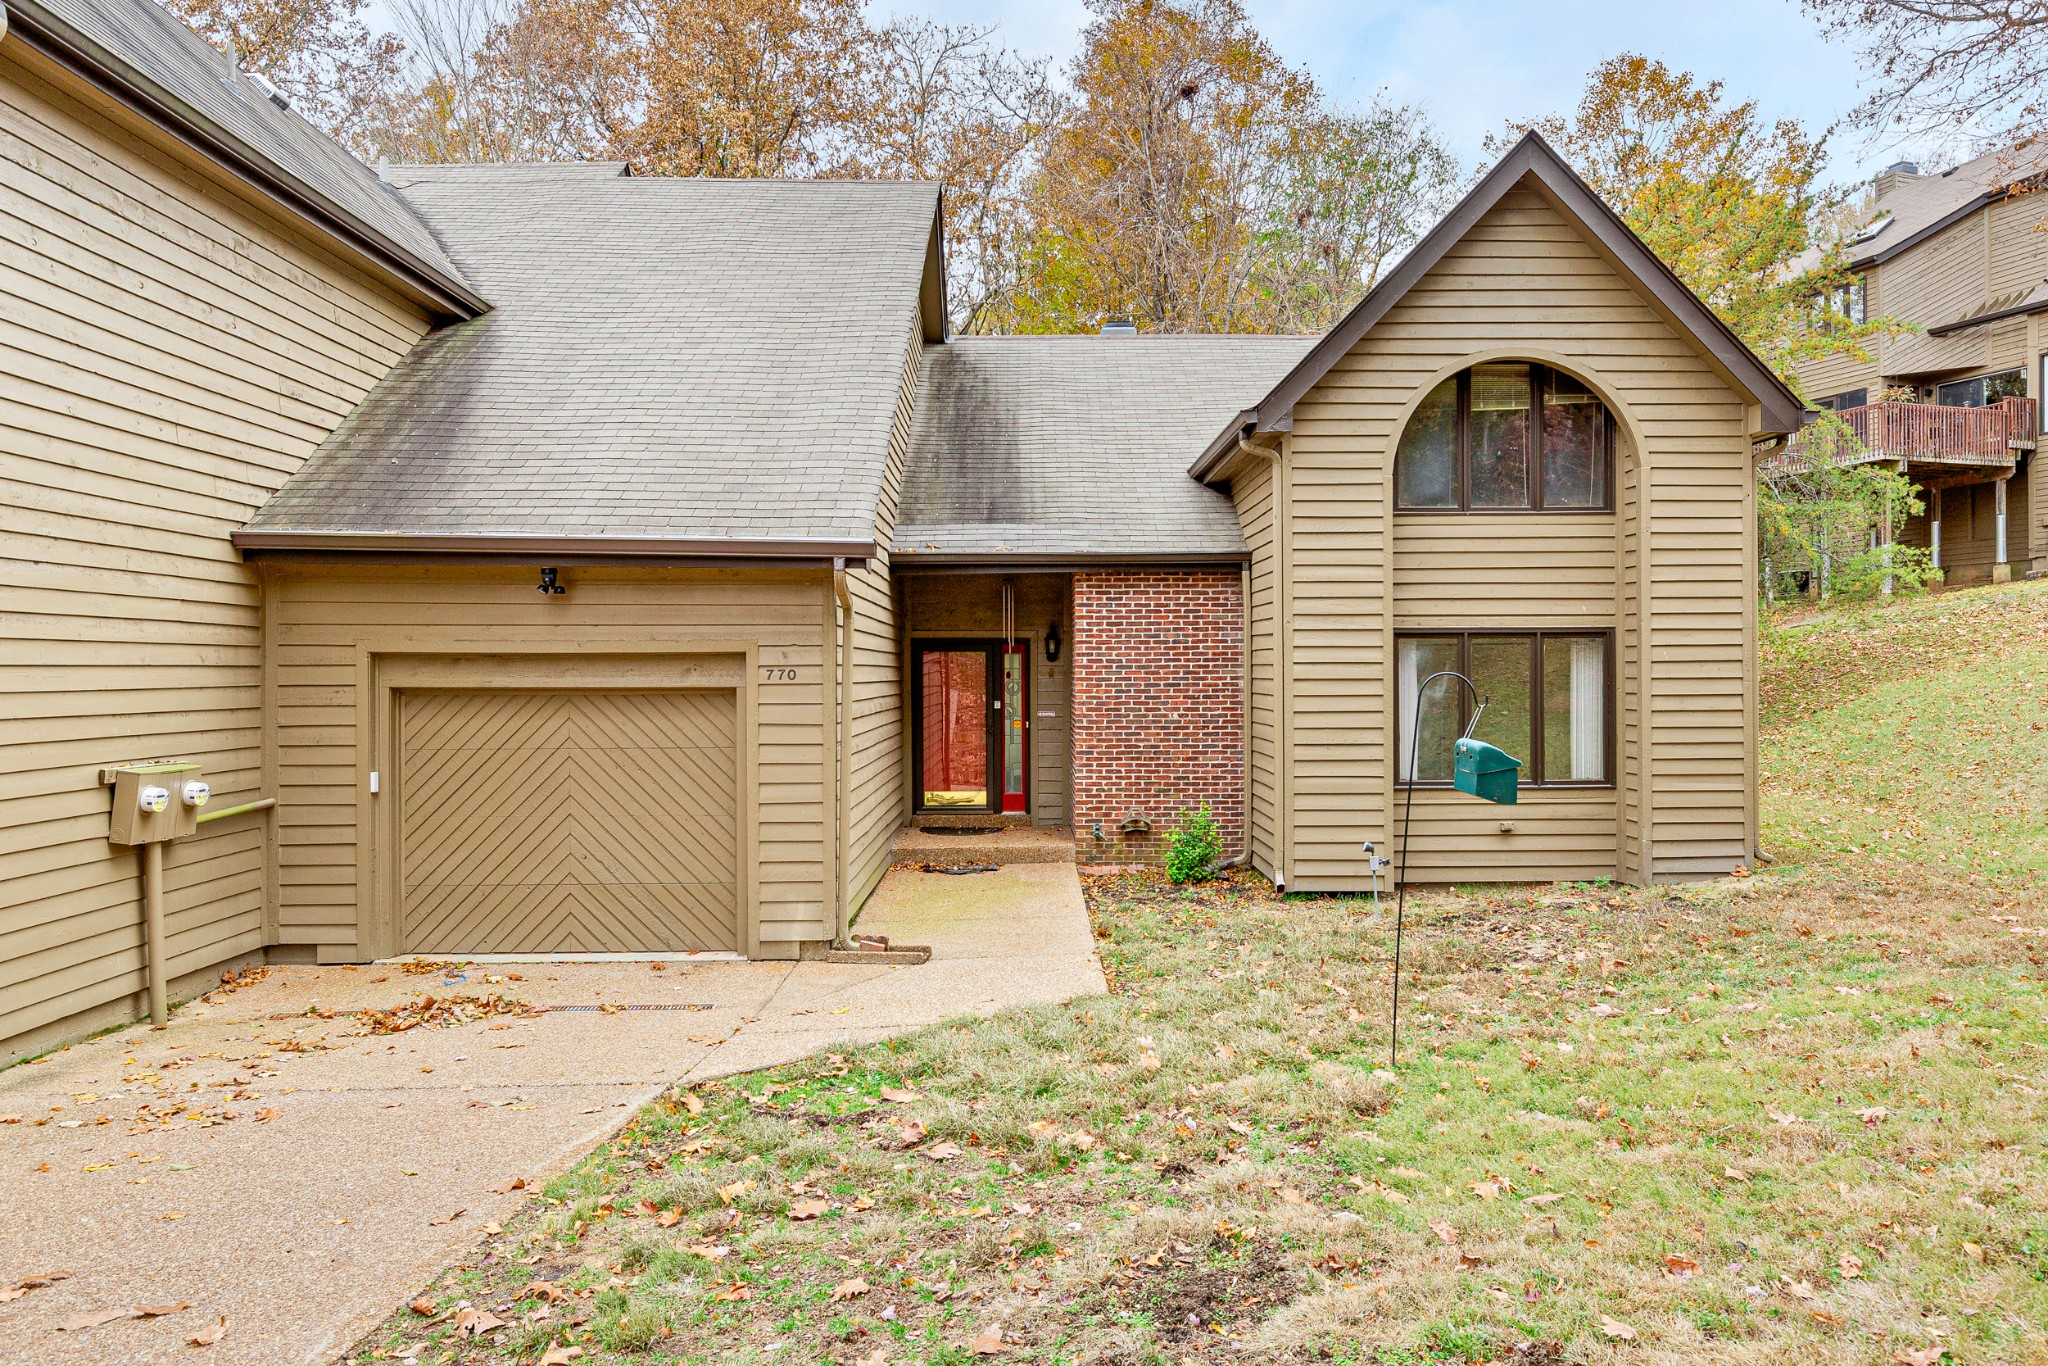 770 Harpeth Trace Dr, Bellevue in Davidson County County, TN 37221 Home for Sale